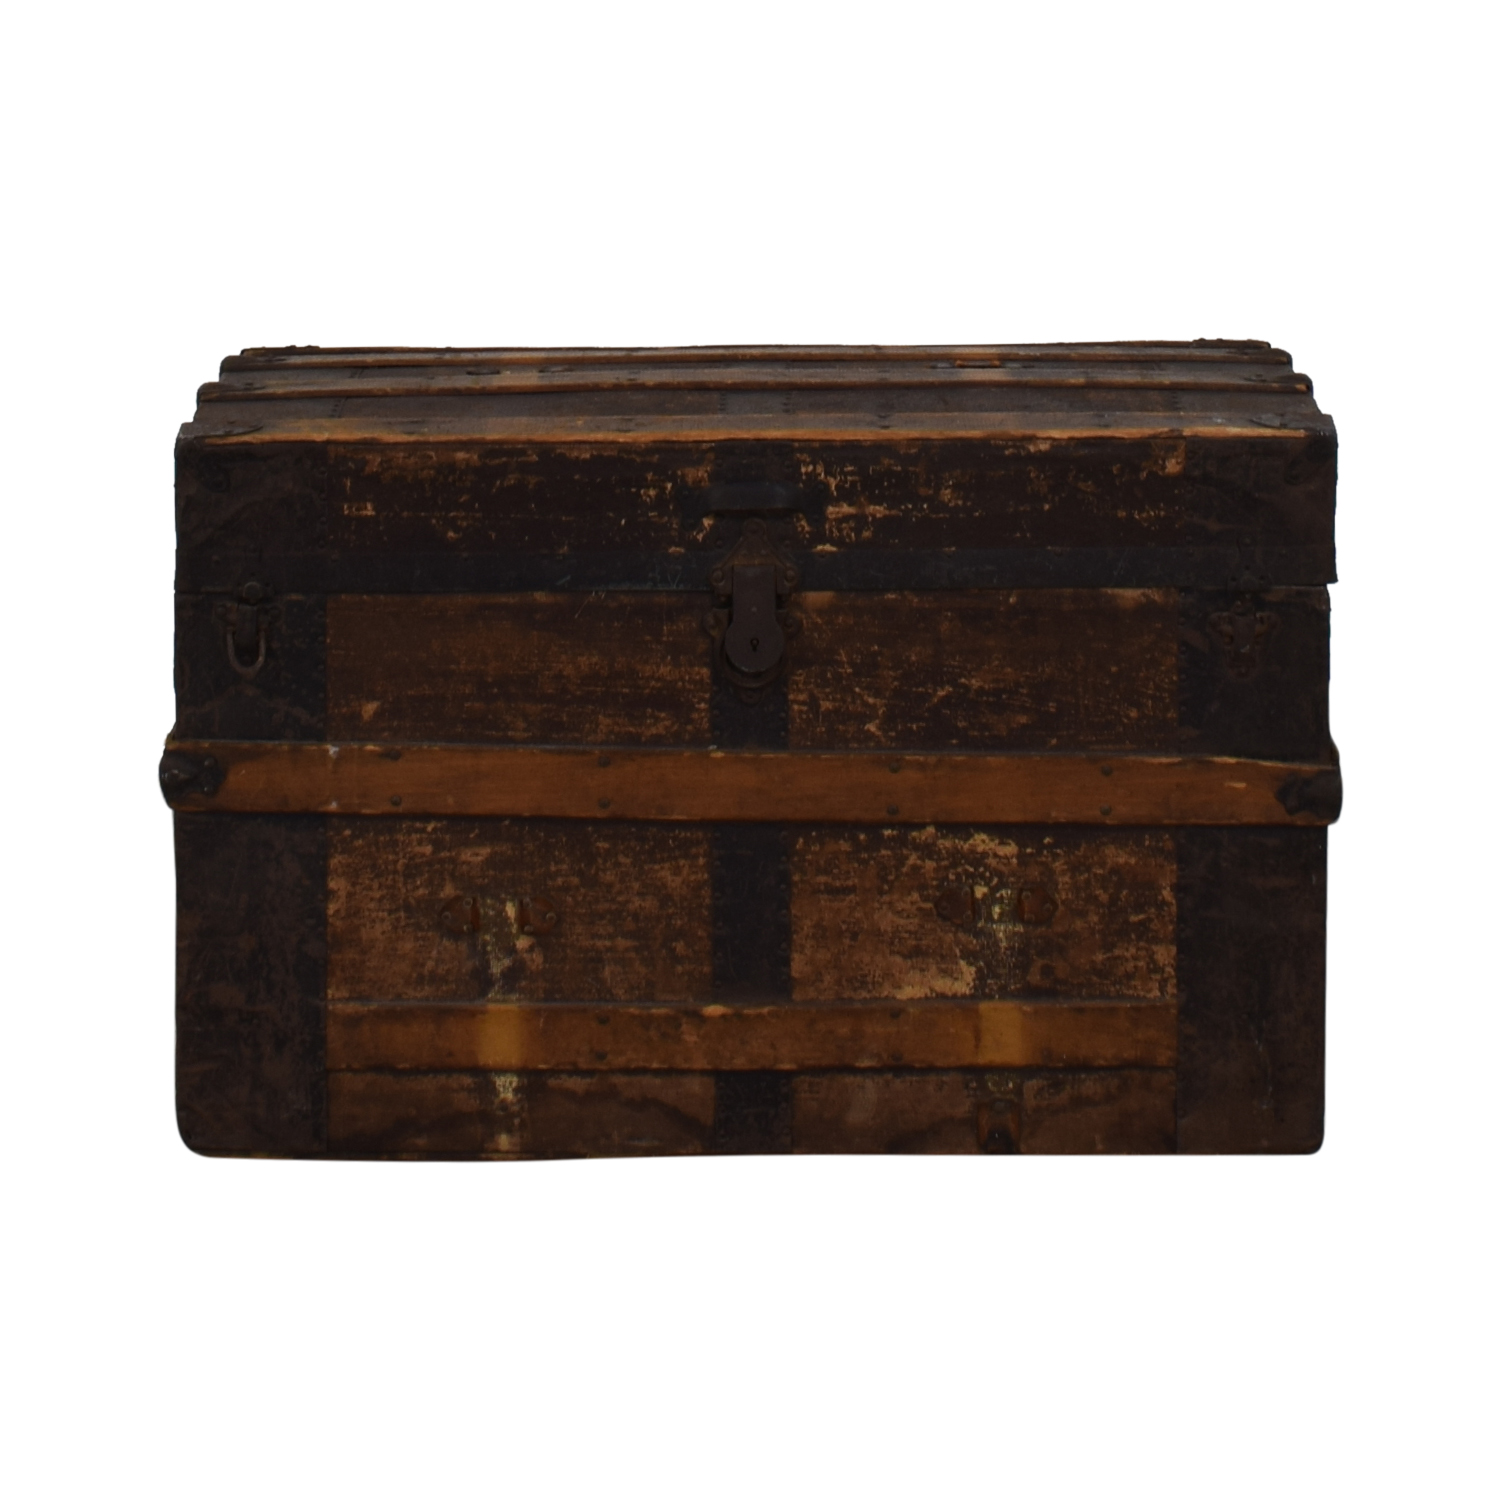 Decorative Antique Trunk / Trunks